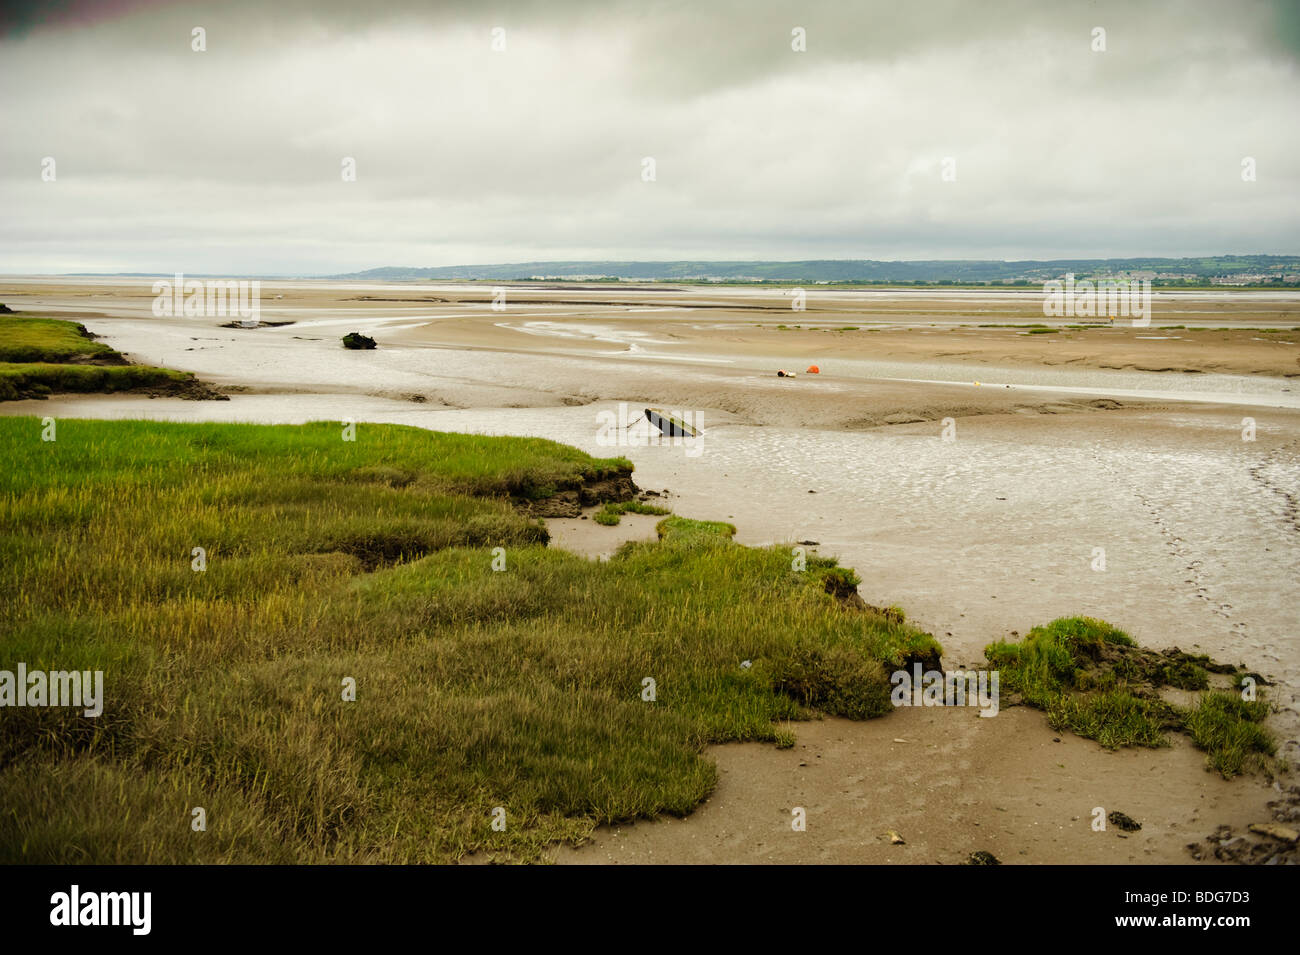 Low tide exposing the mudflats of the Llanrhidian sands on the Loughor estuary, south  west wales UK, overcast grey - Stock Image